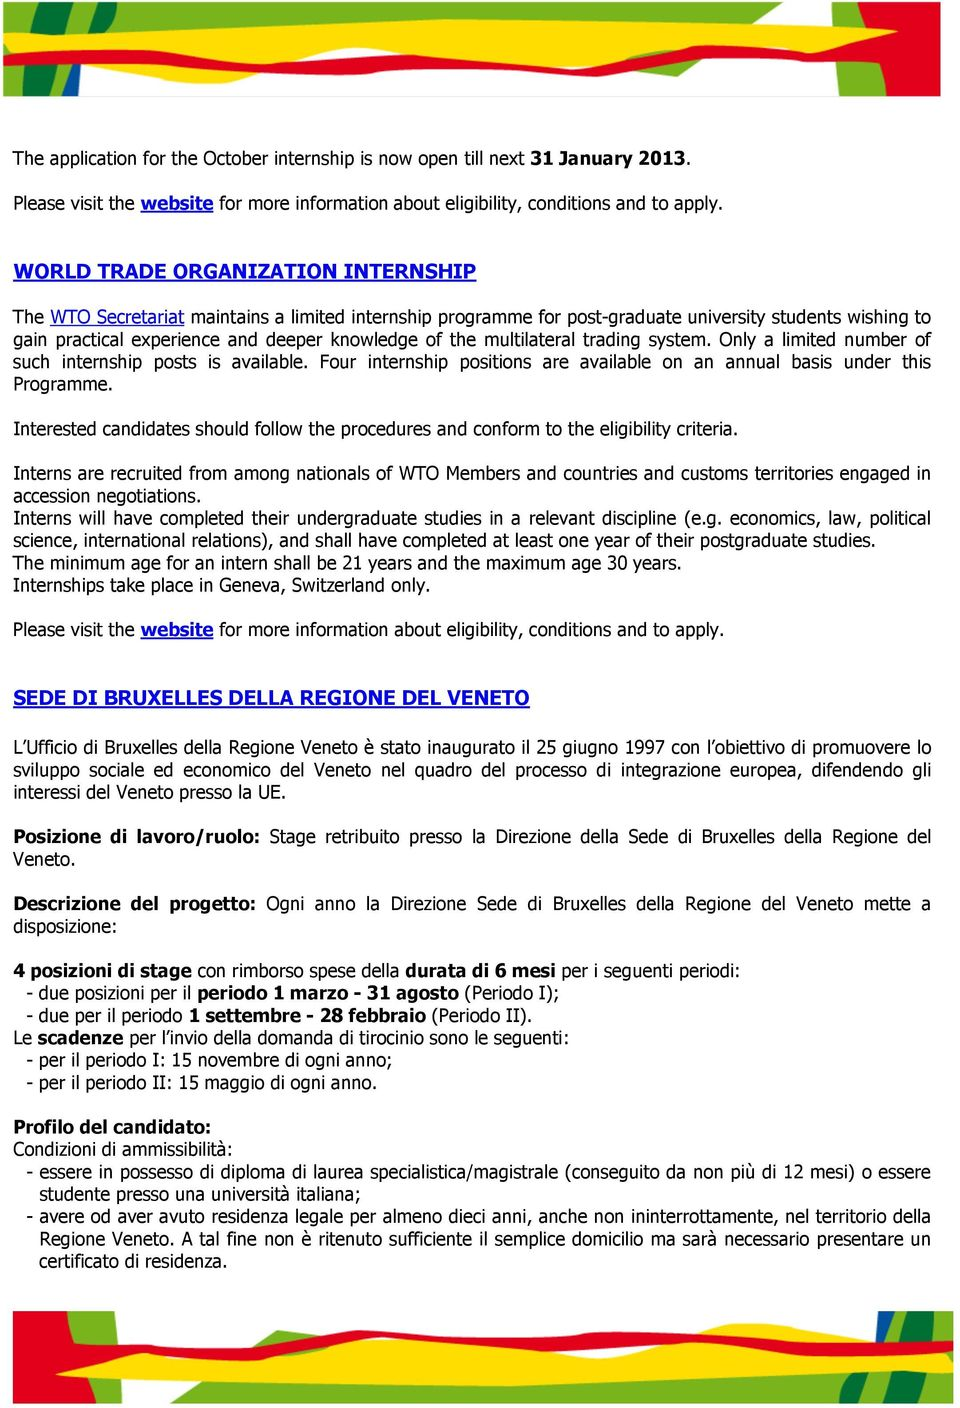 multilateral trading system. Only a limited number of such internship posts is available. Four internship positions are available on an annual basis under this Programme.